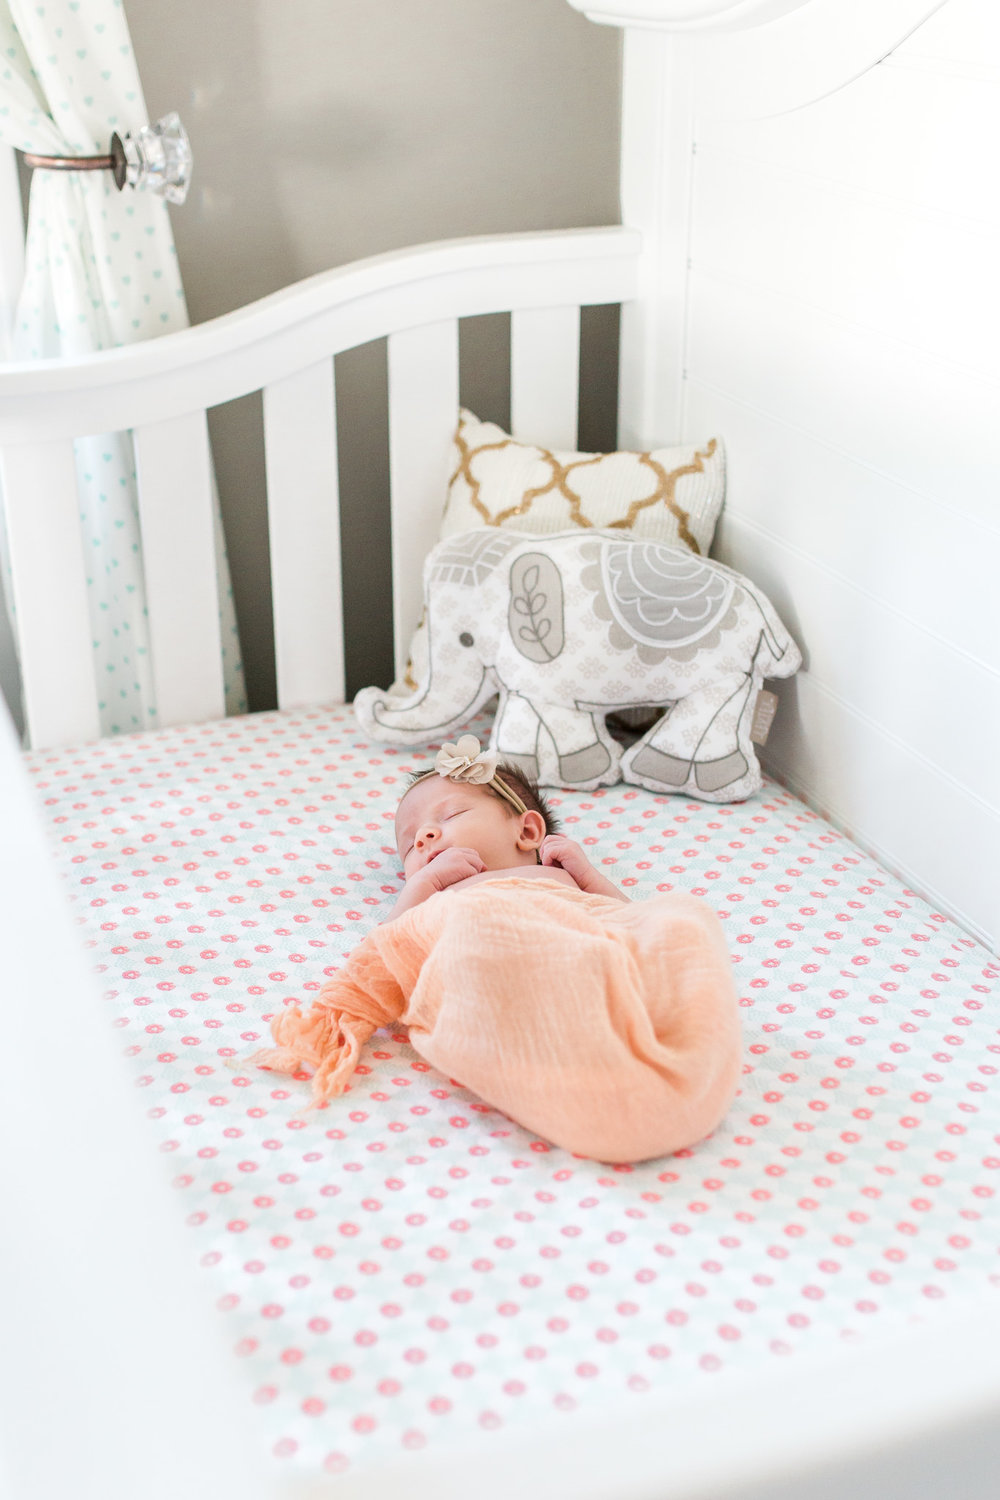 Natural Light Newborn Lifestyle Session   In-home session   Baby Girl   Nursery Inspiration   Laurenda Marie Photography